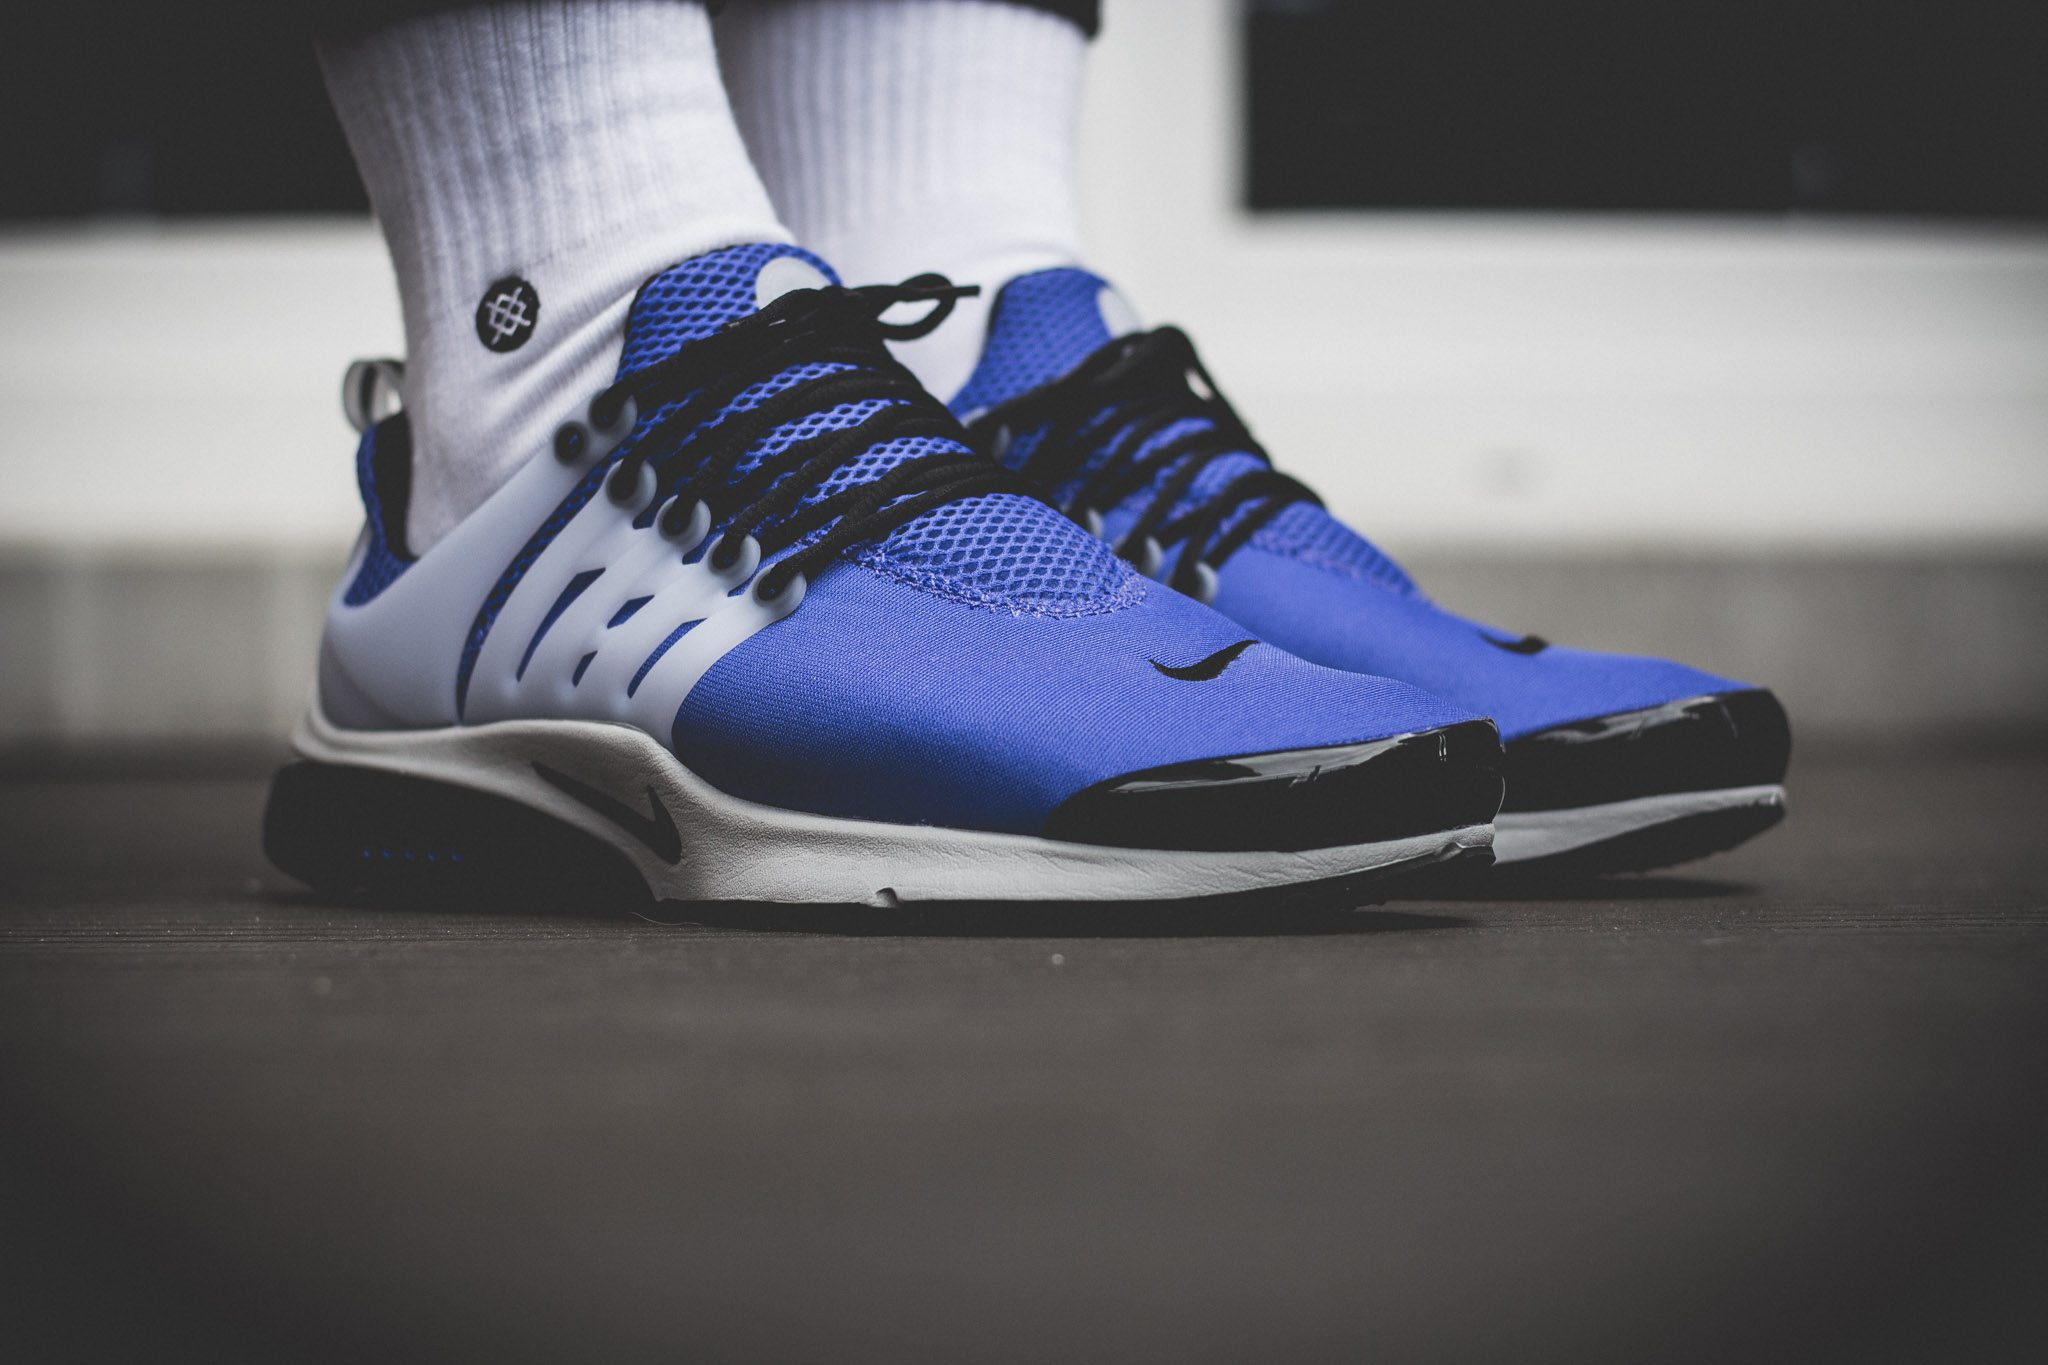 Nike Air Presto Persion Violet On Feet 2